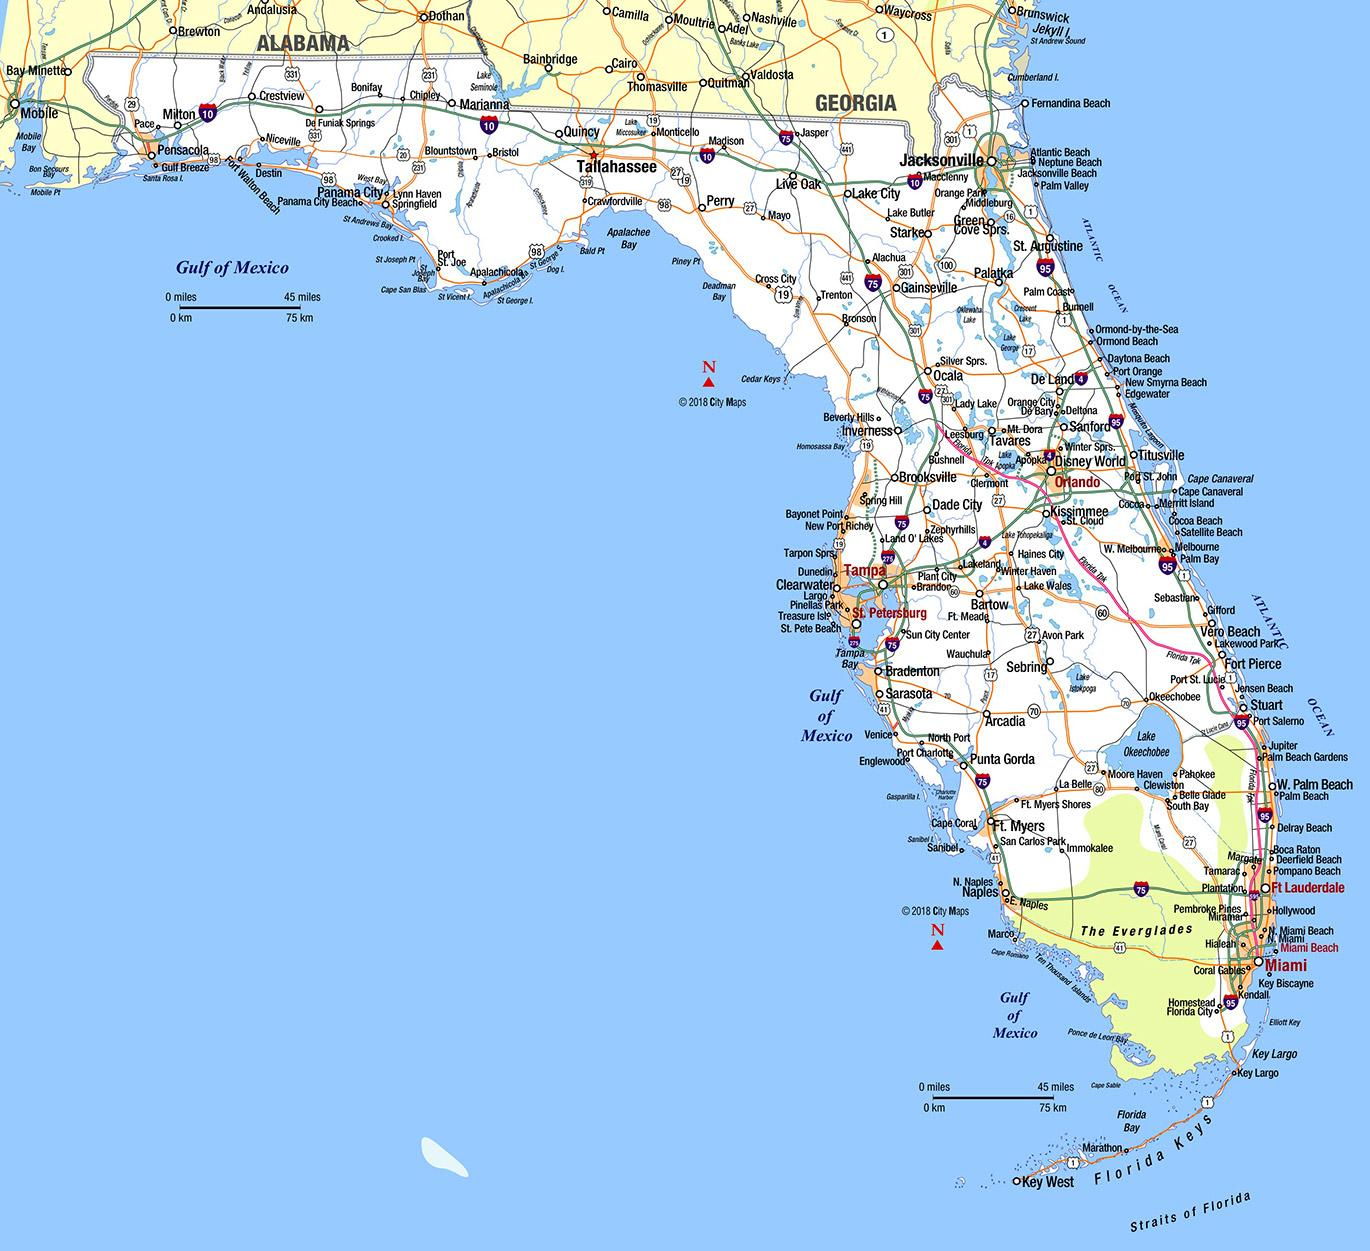 Southern Florida - Aaccessmaps - Where Is Apalachicola Florida On The Map